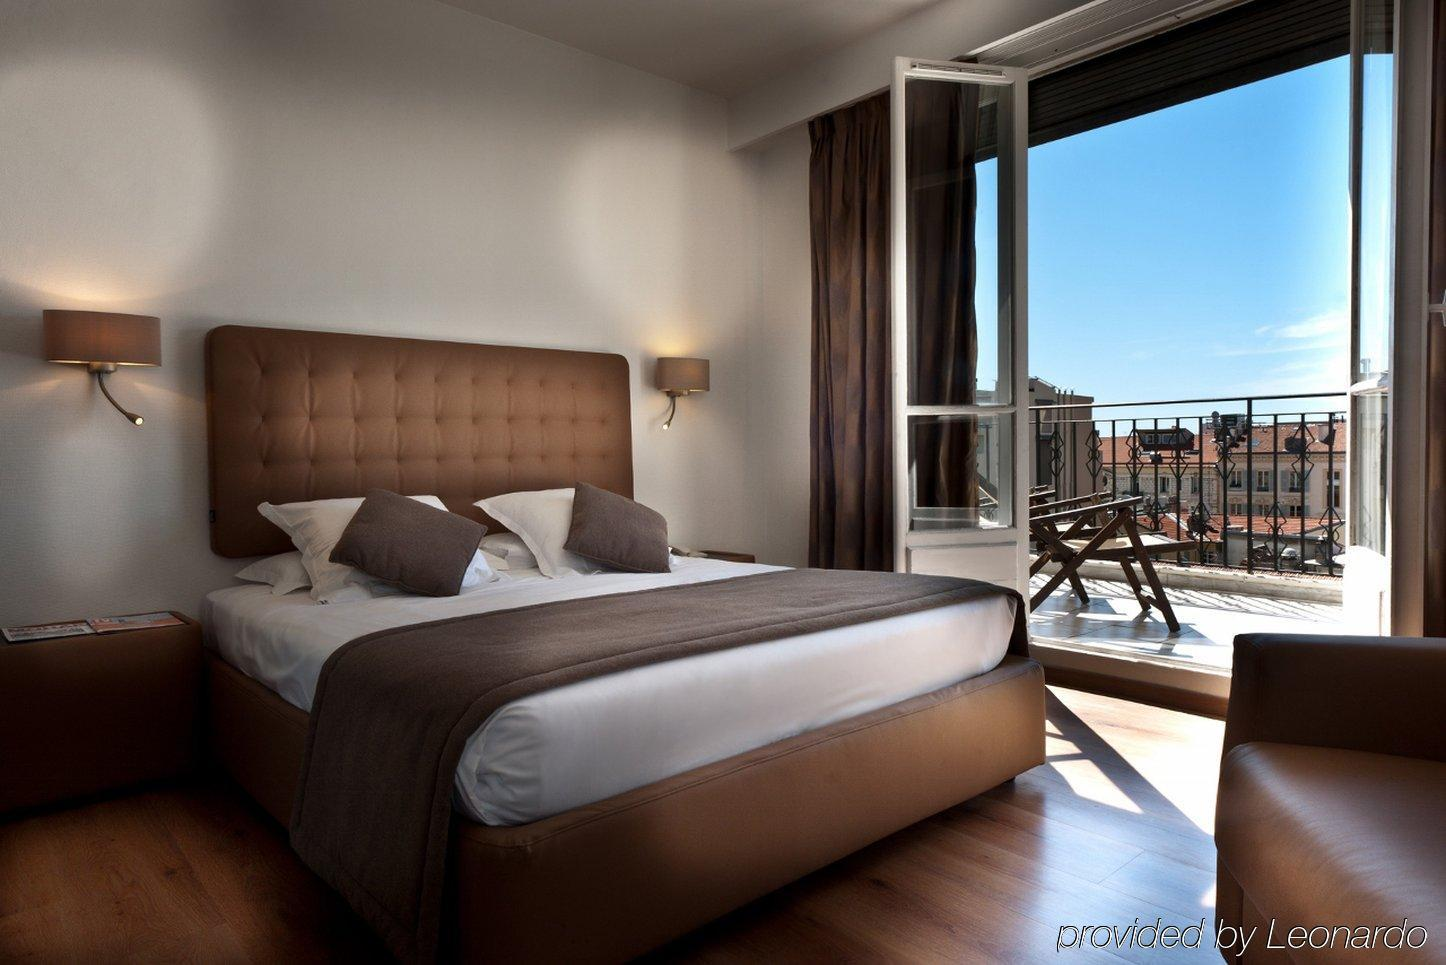 La malmaison boutique hotel nice for Boutique hotel nice